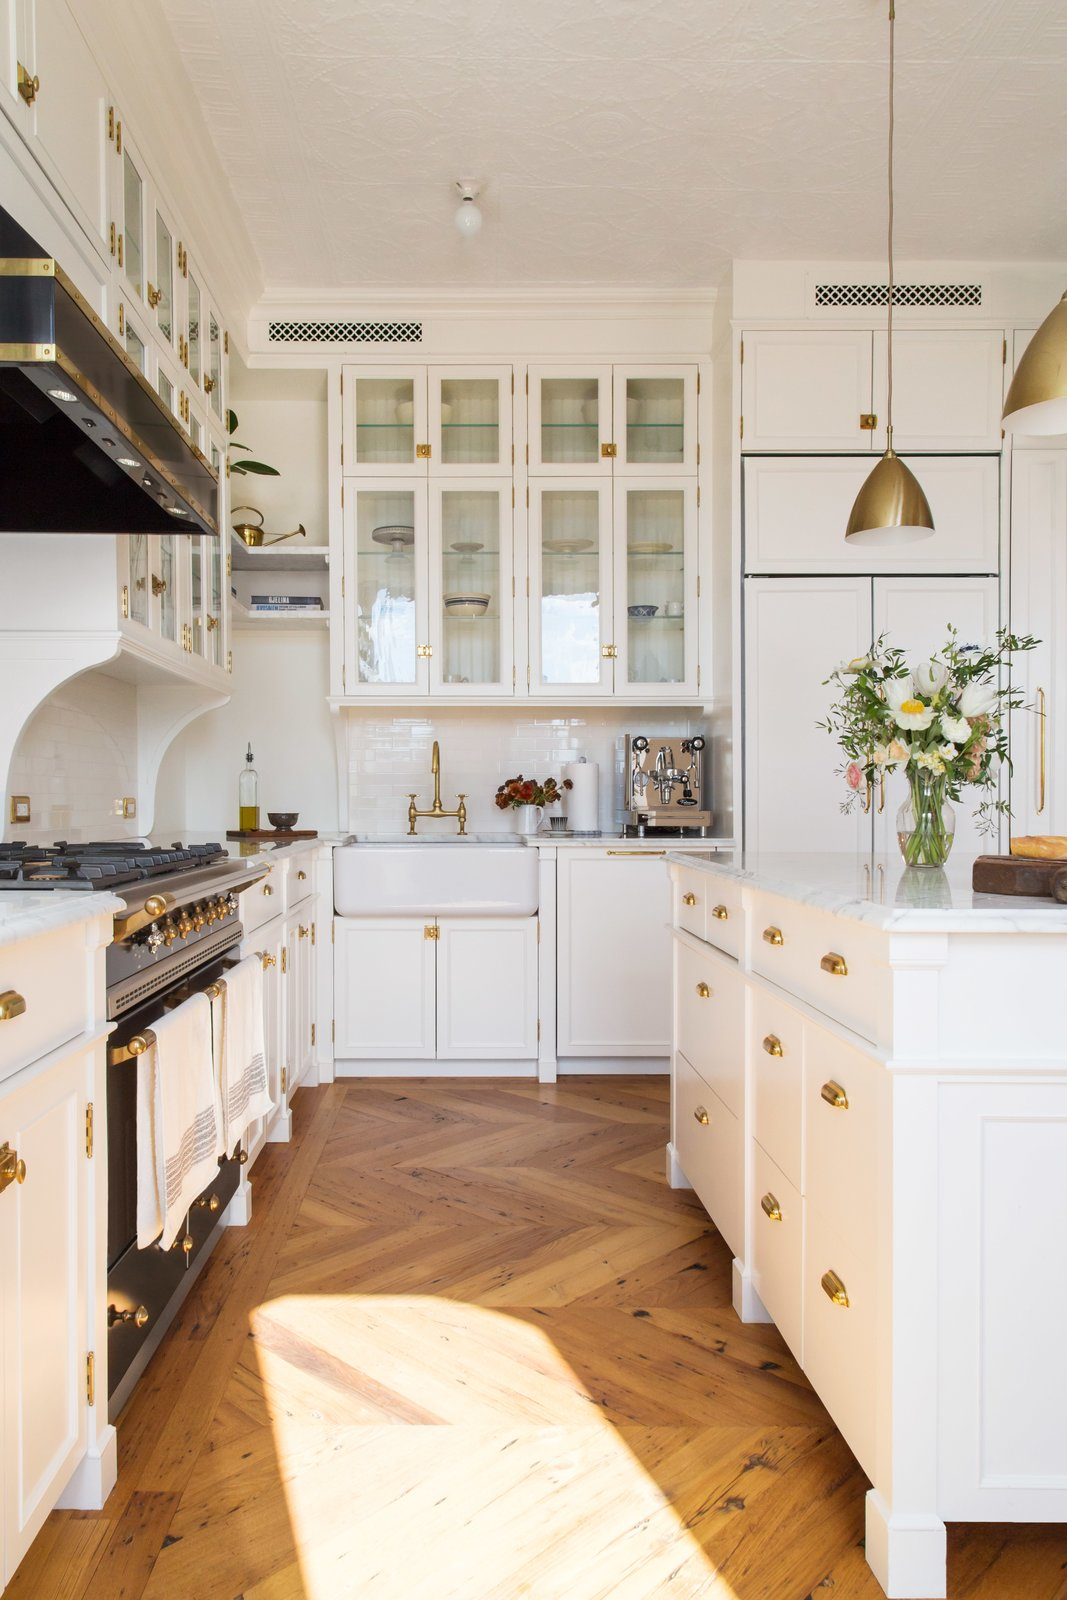 For this Williamsburg schoolhouse renovation, Keren Richter of White Arrow selected this historic-looking, bridge-style faucet from Barber Wilsons to complement the wavy glass cabinetry and unlacquered brass cupboard latches.   Photo 5 of 11 in How Much Should You Spend on a Kitchen Faucet?